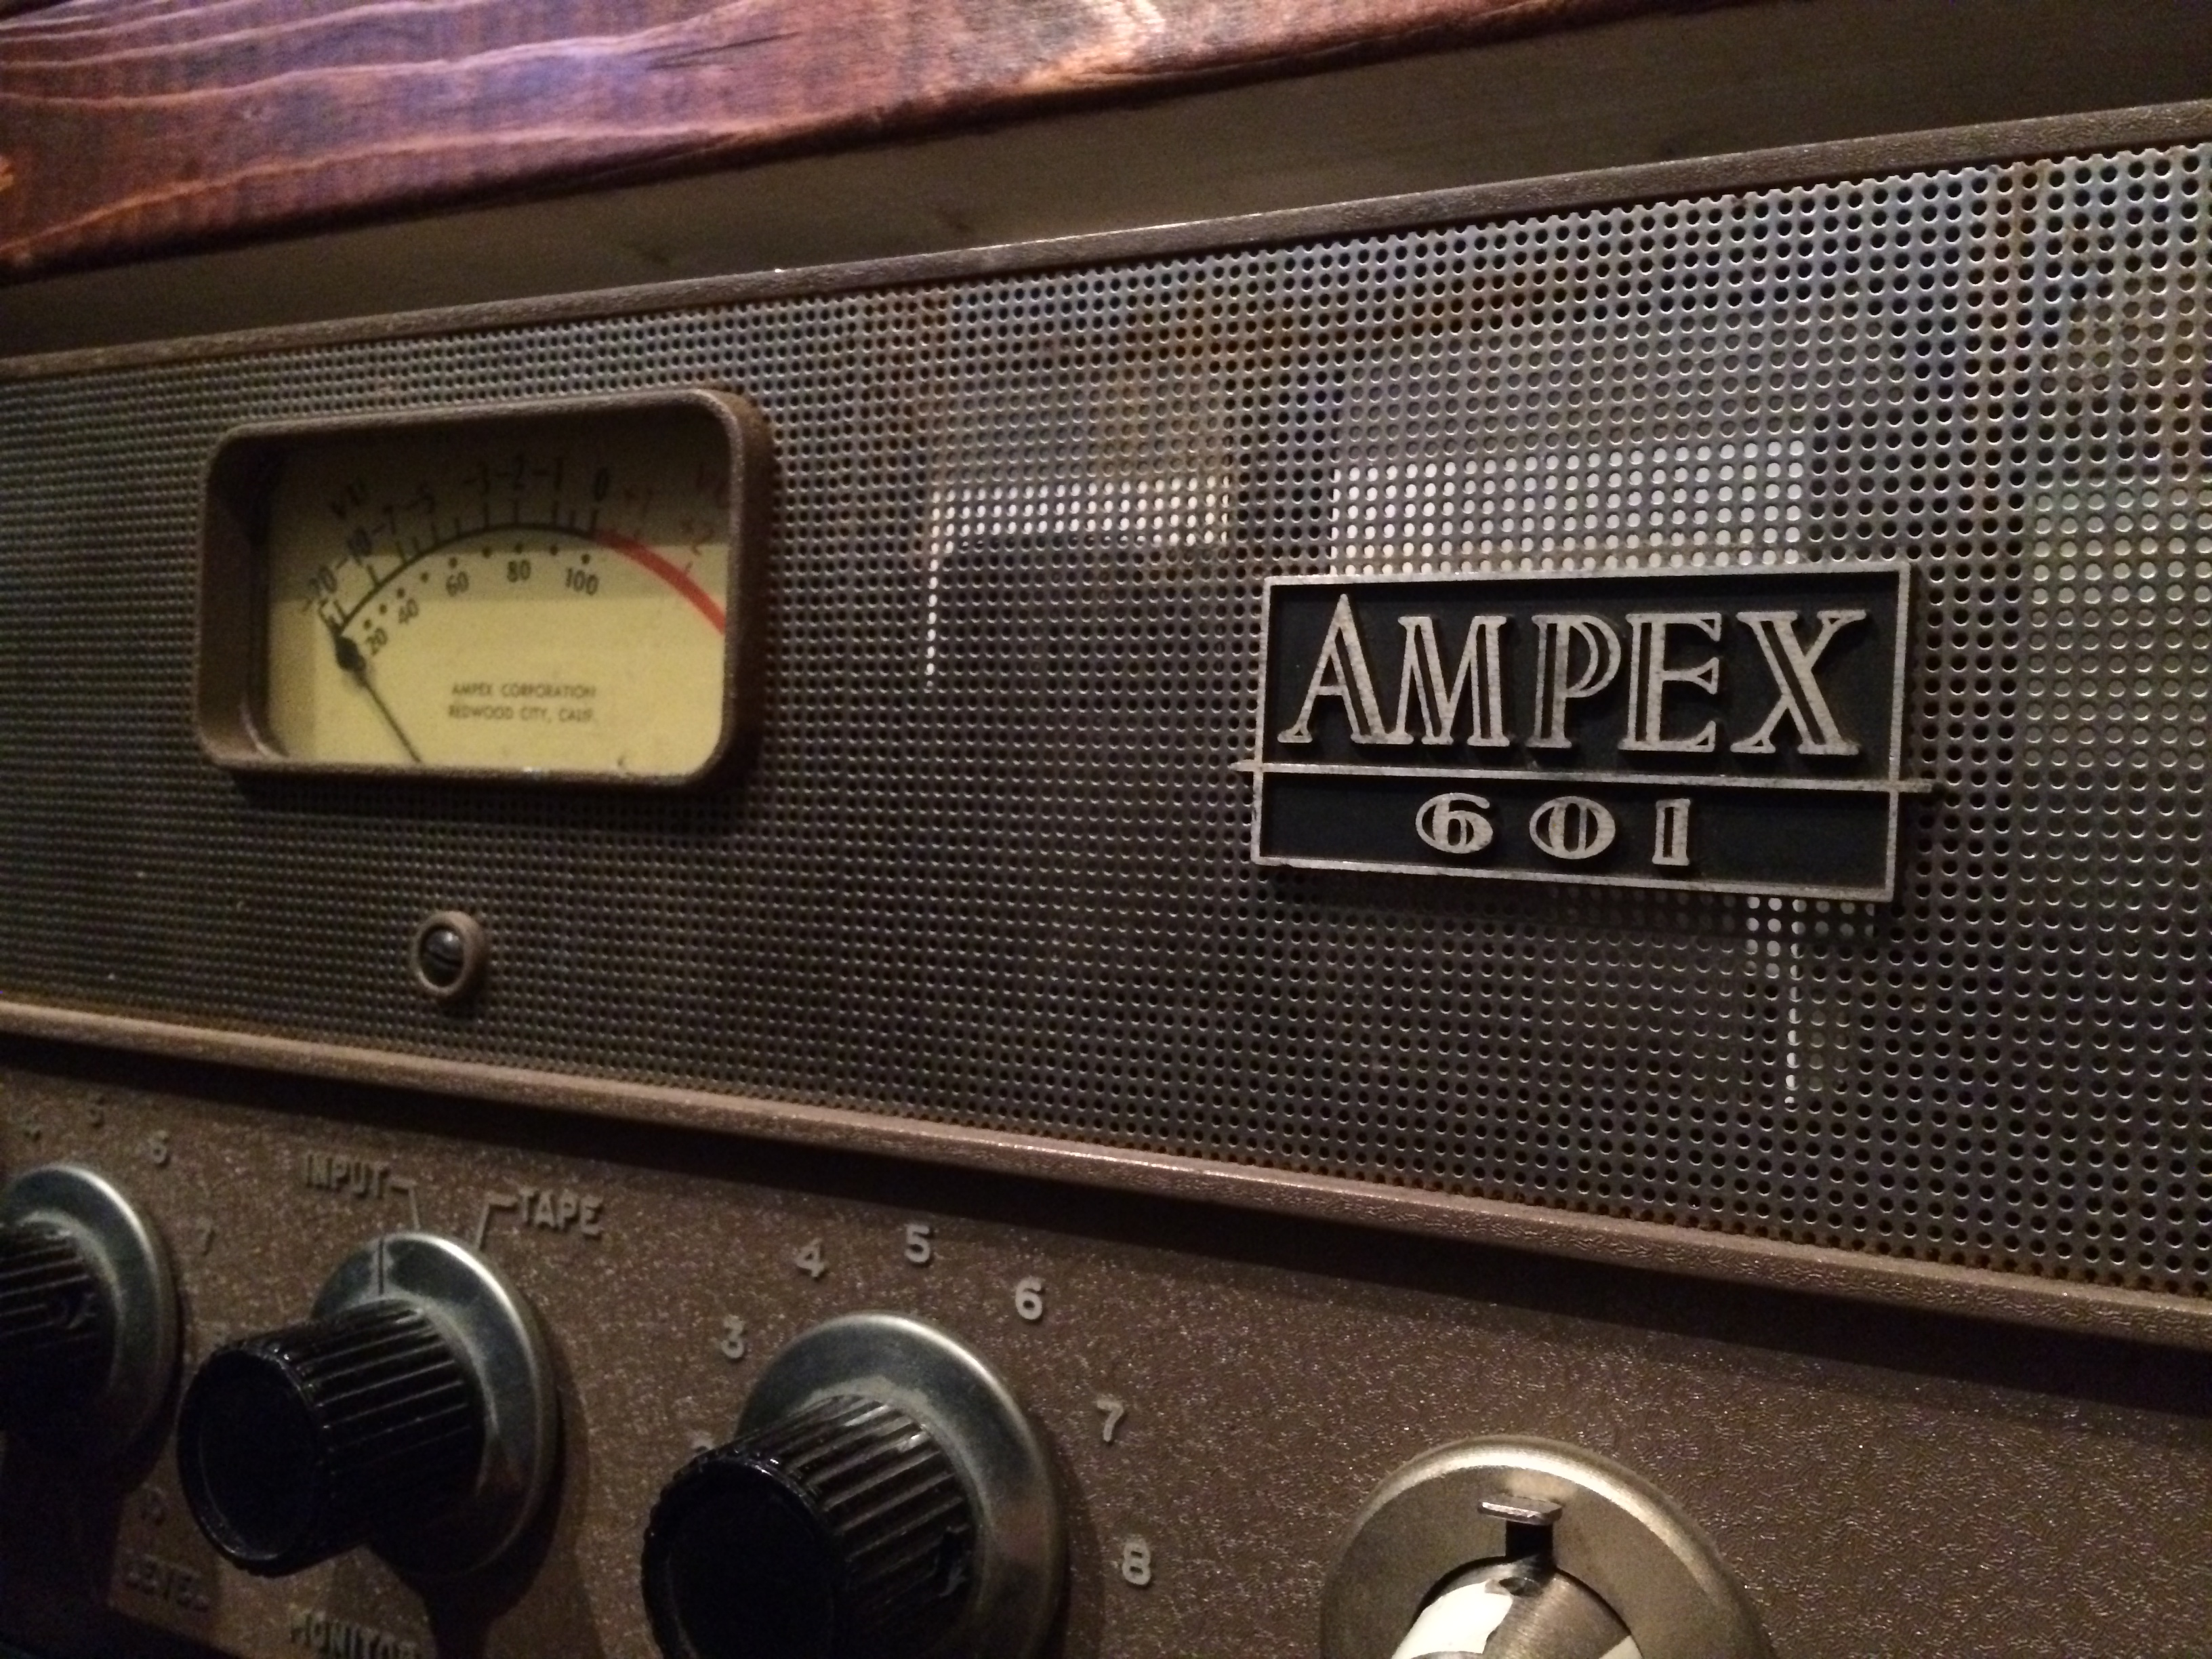 NYC Recording Studio Gear Ampex 601